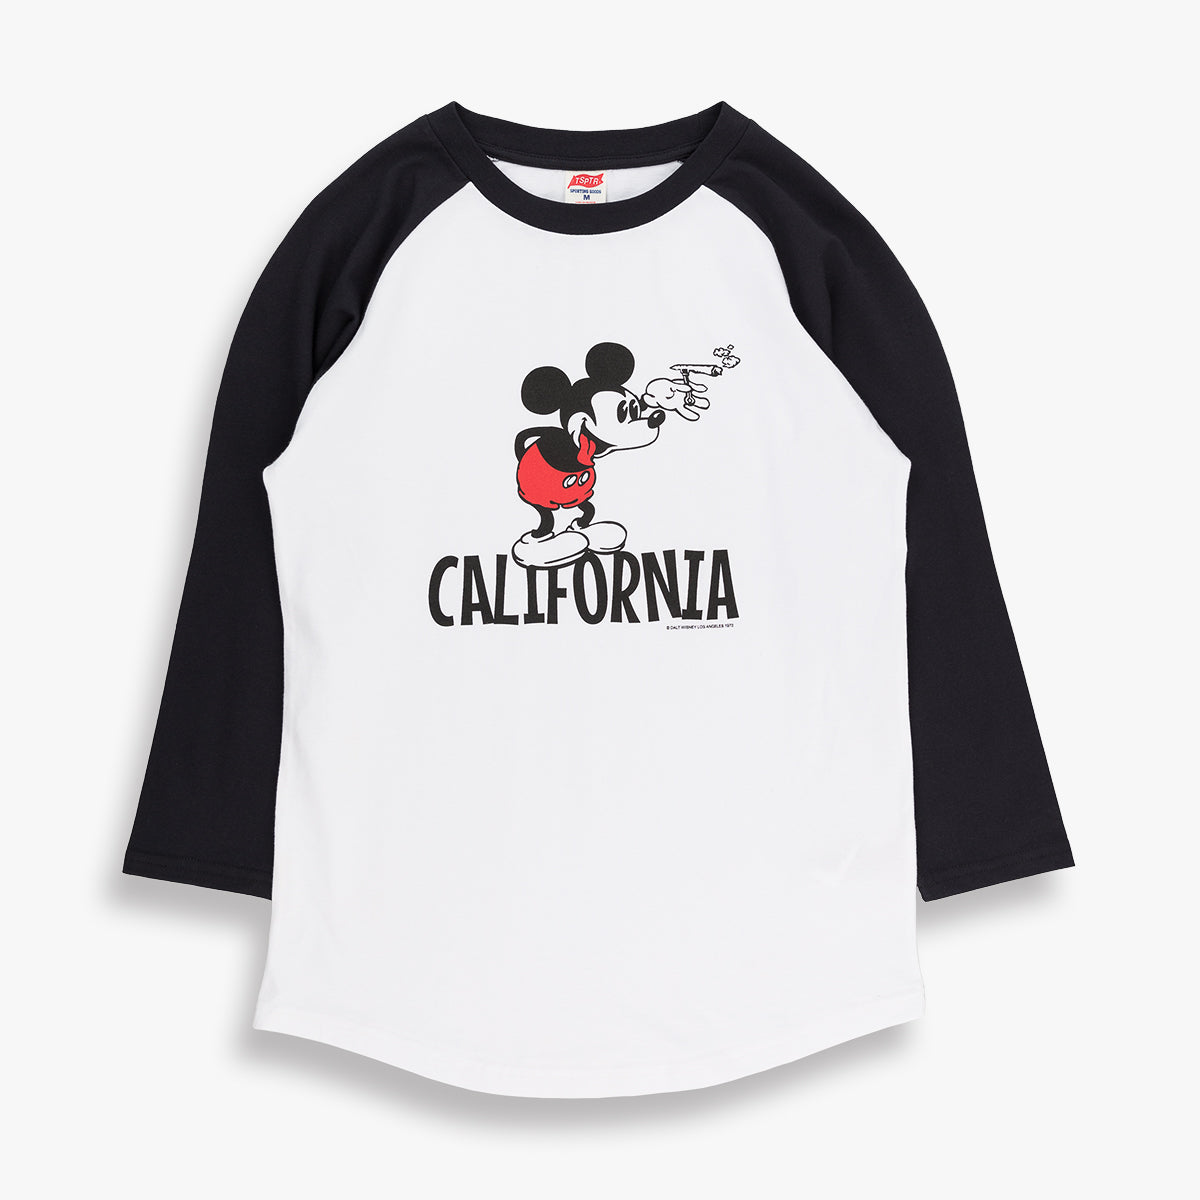 CALIFORNIA BASEBALL JERSEY